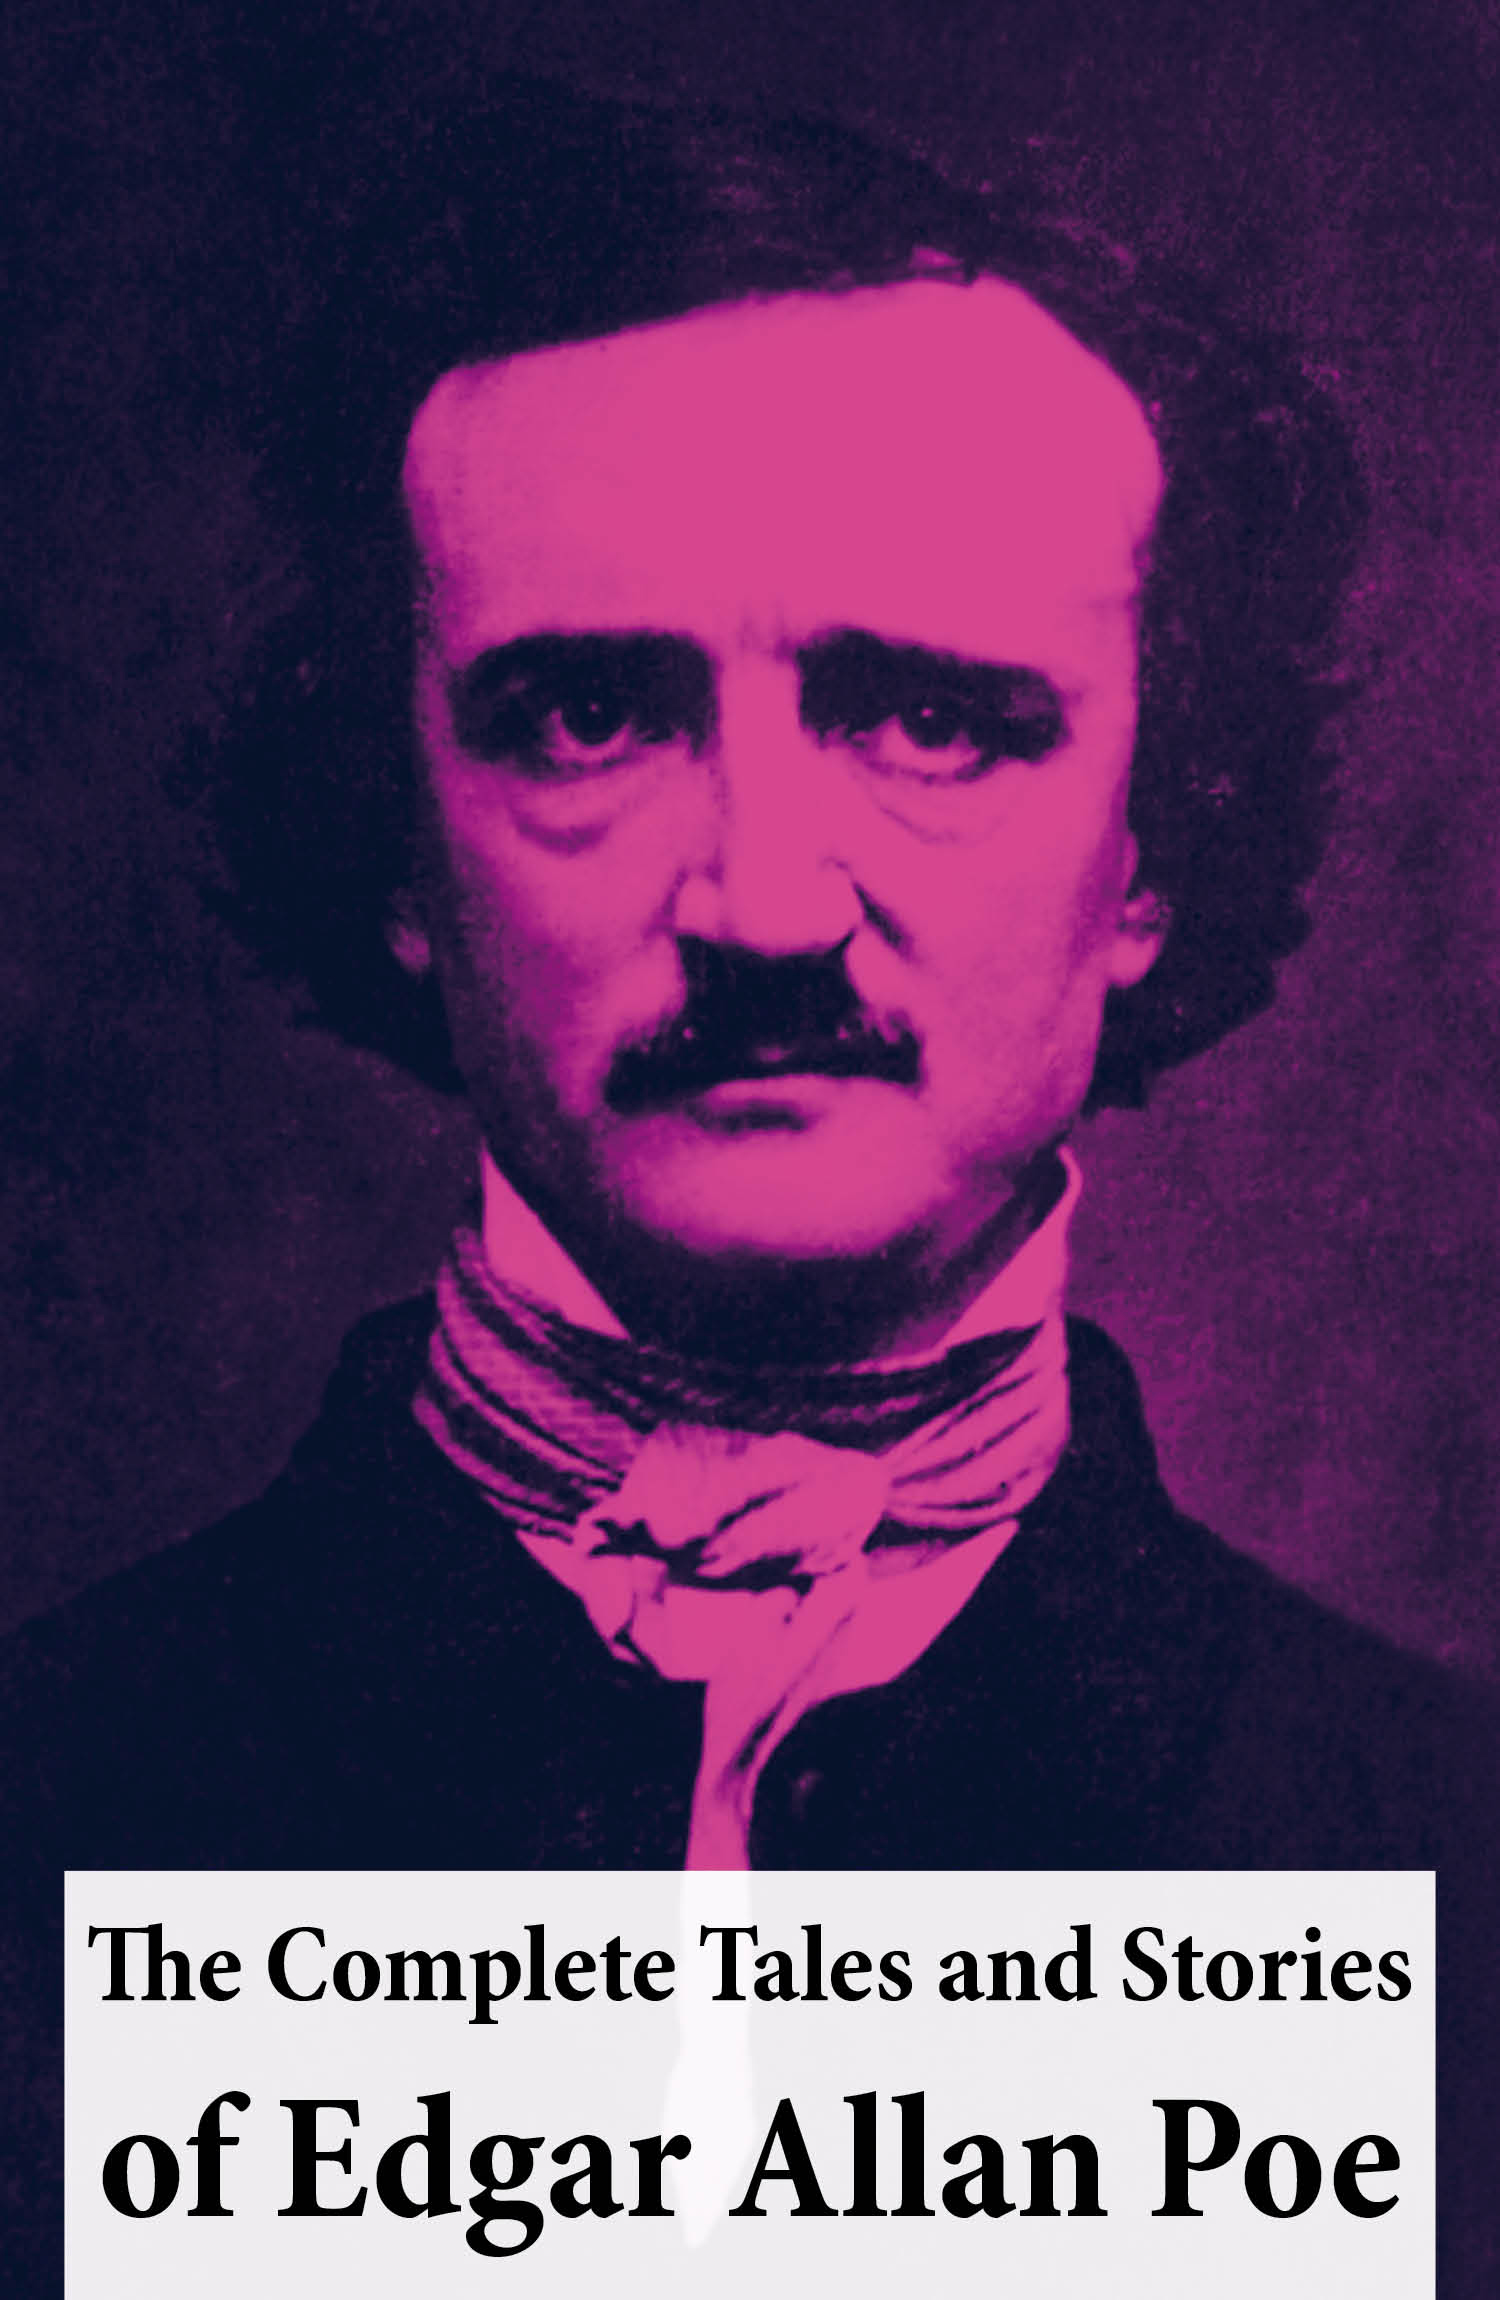 The Complete Tales and Stories of Edgar Allan Poe